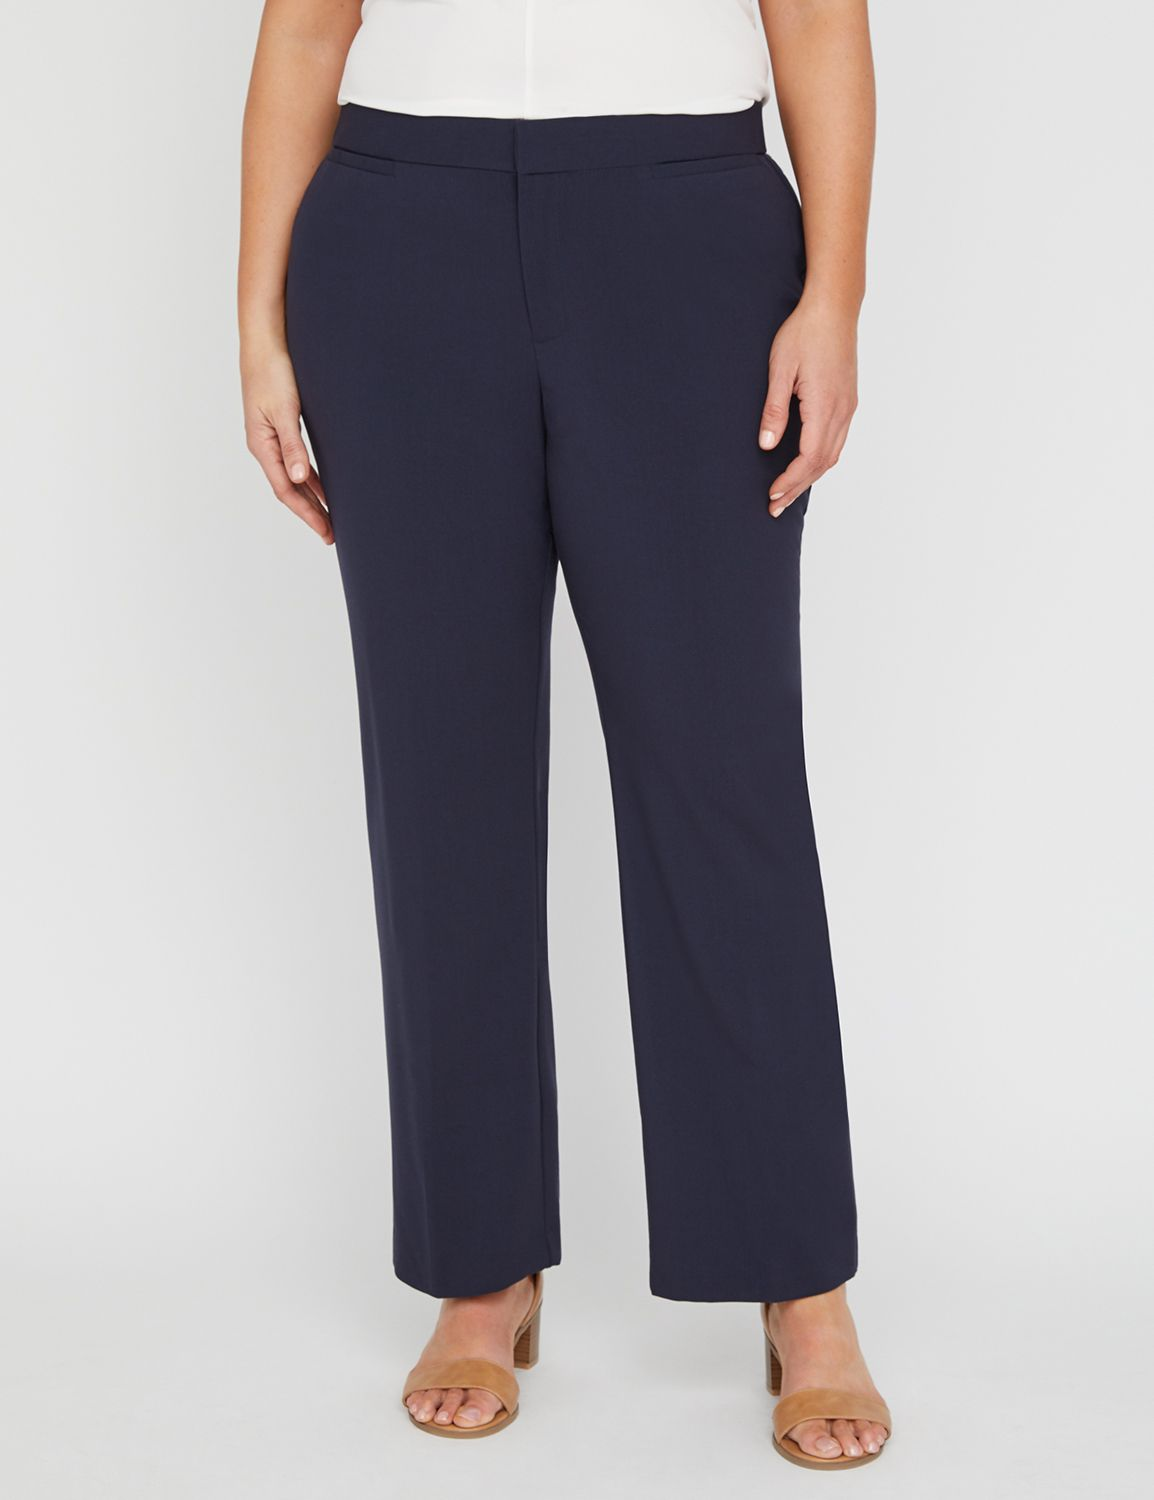 Right Fit Pant (Moderately Curvy) Right Fit Pant (Moderately Curvy) MP-300043674